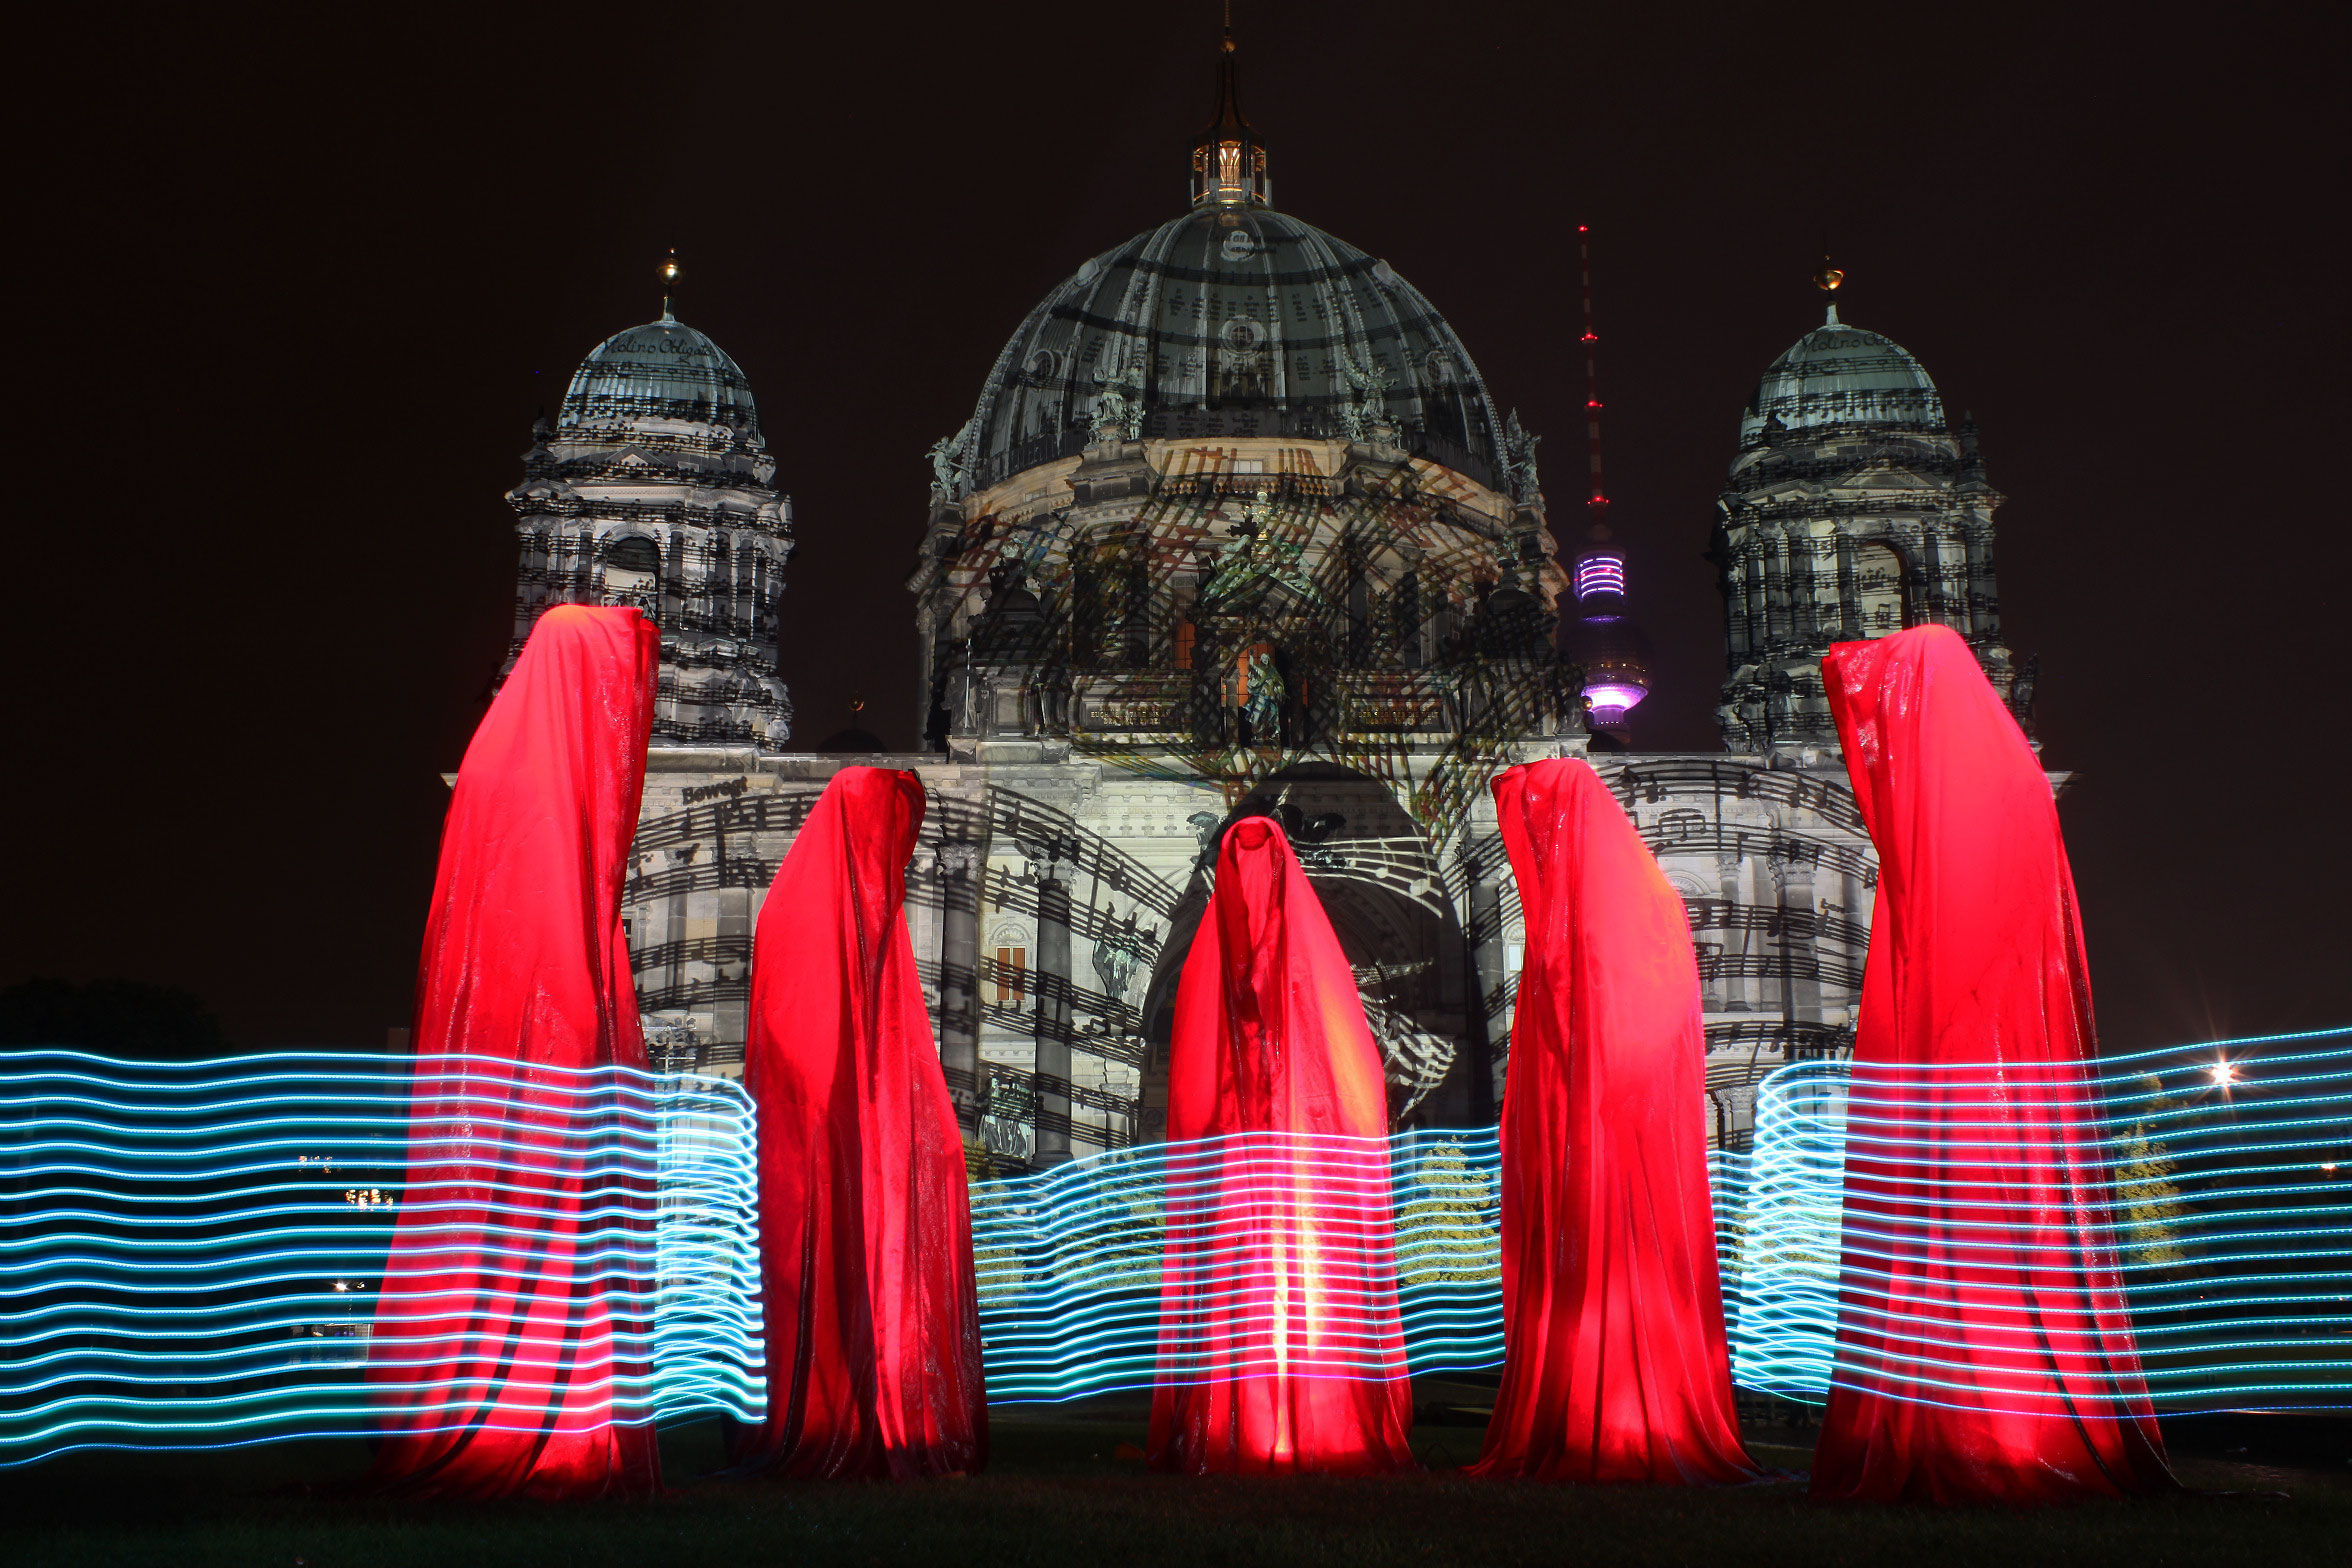 festival-of-lights-berlin-guardians-of-time-manfred-kielnhofer-light-art-sculpture-berliner-dom-lustgarten-waechter-6854